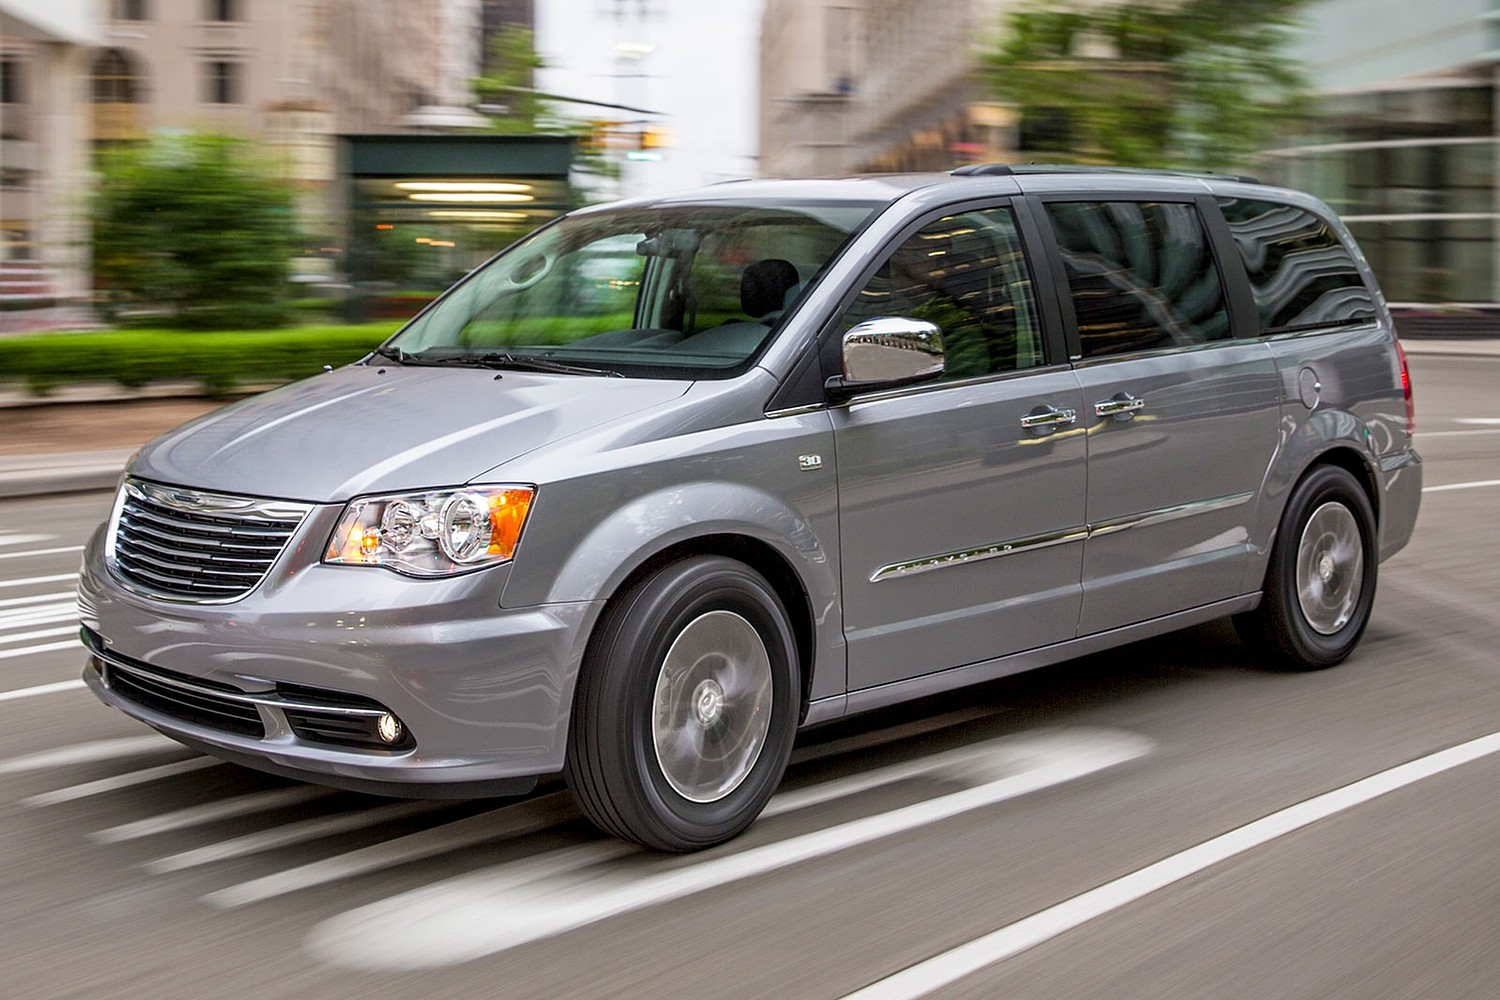 2016 Chrysler Town and Country Anniversary Edition Passenger Minivan Exterior